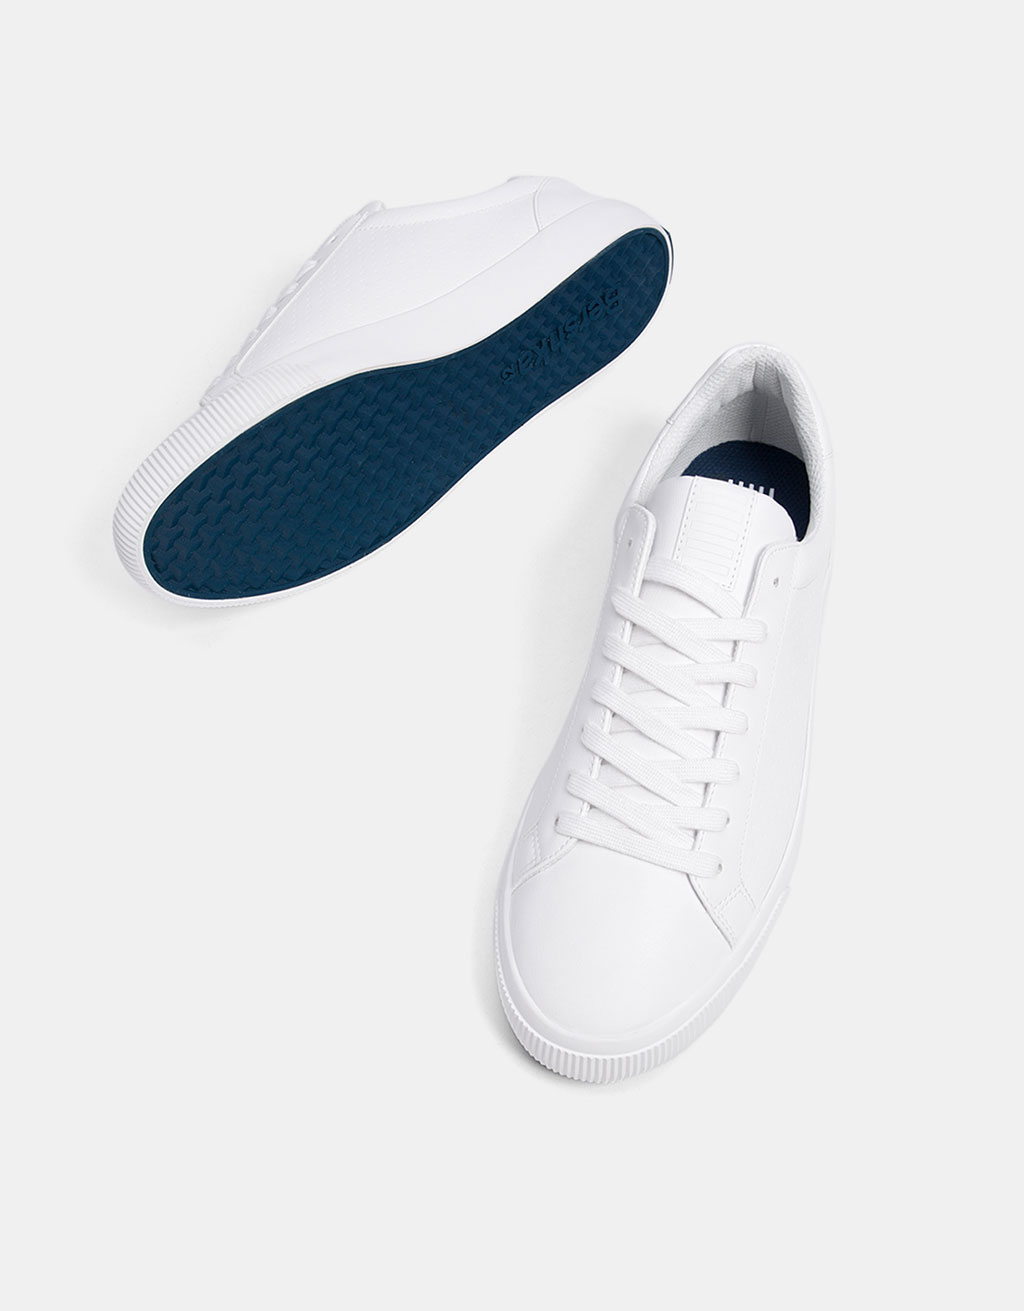 Men's basic sneakers with coloured soles